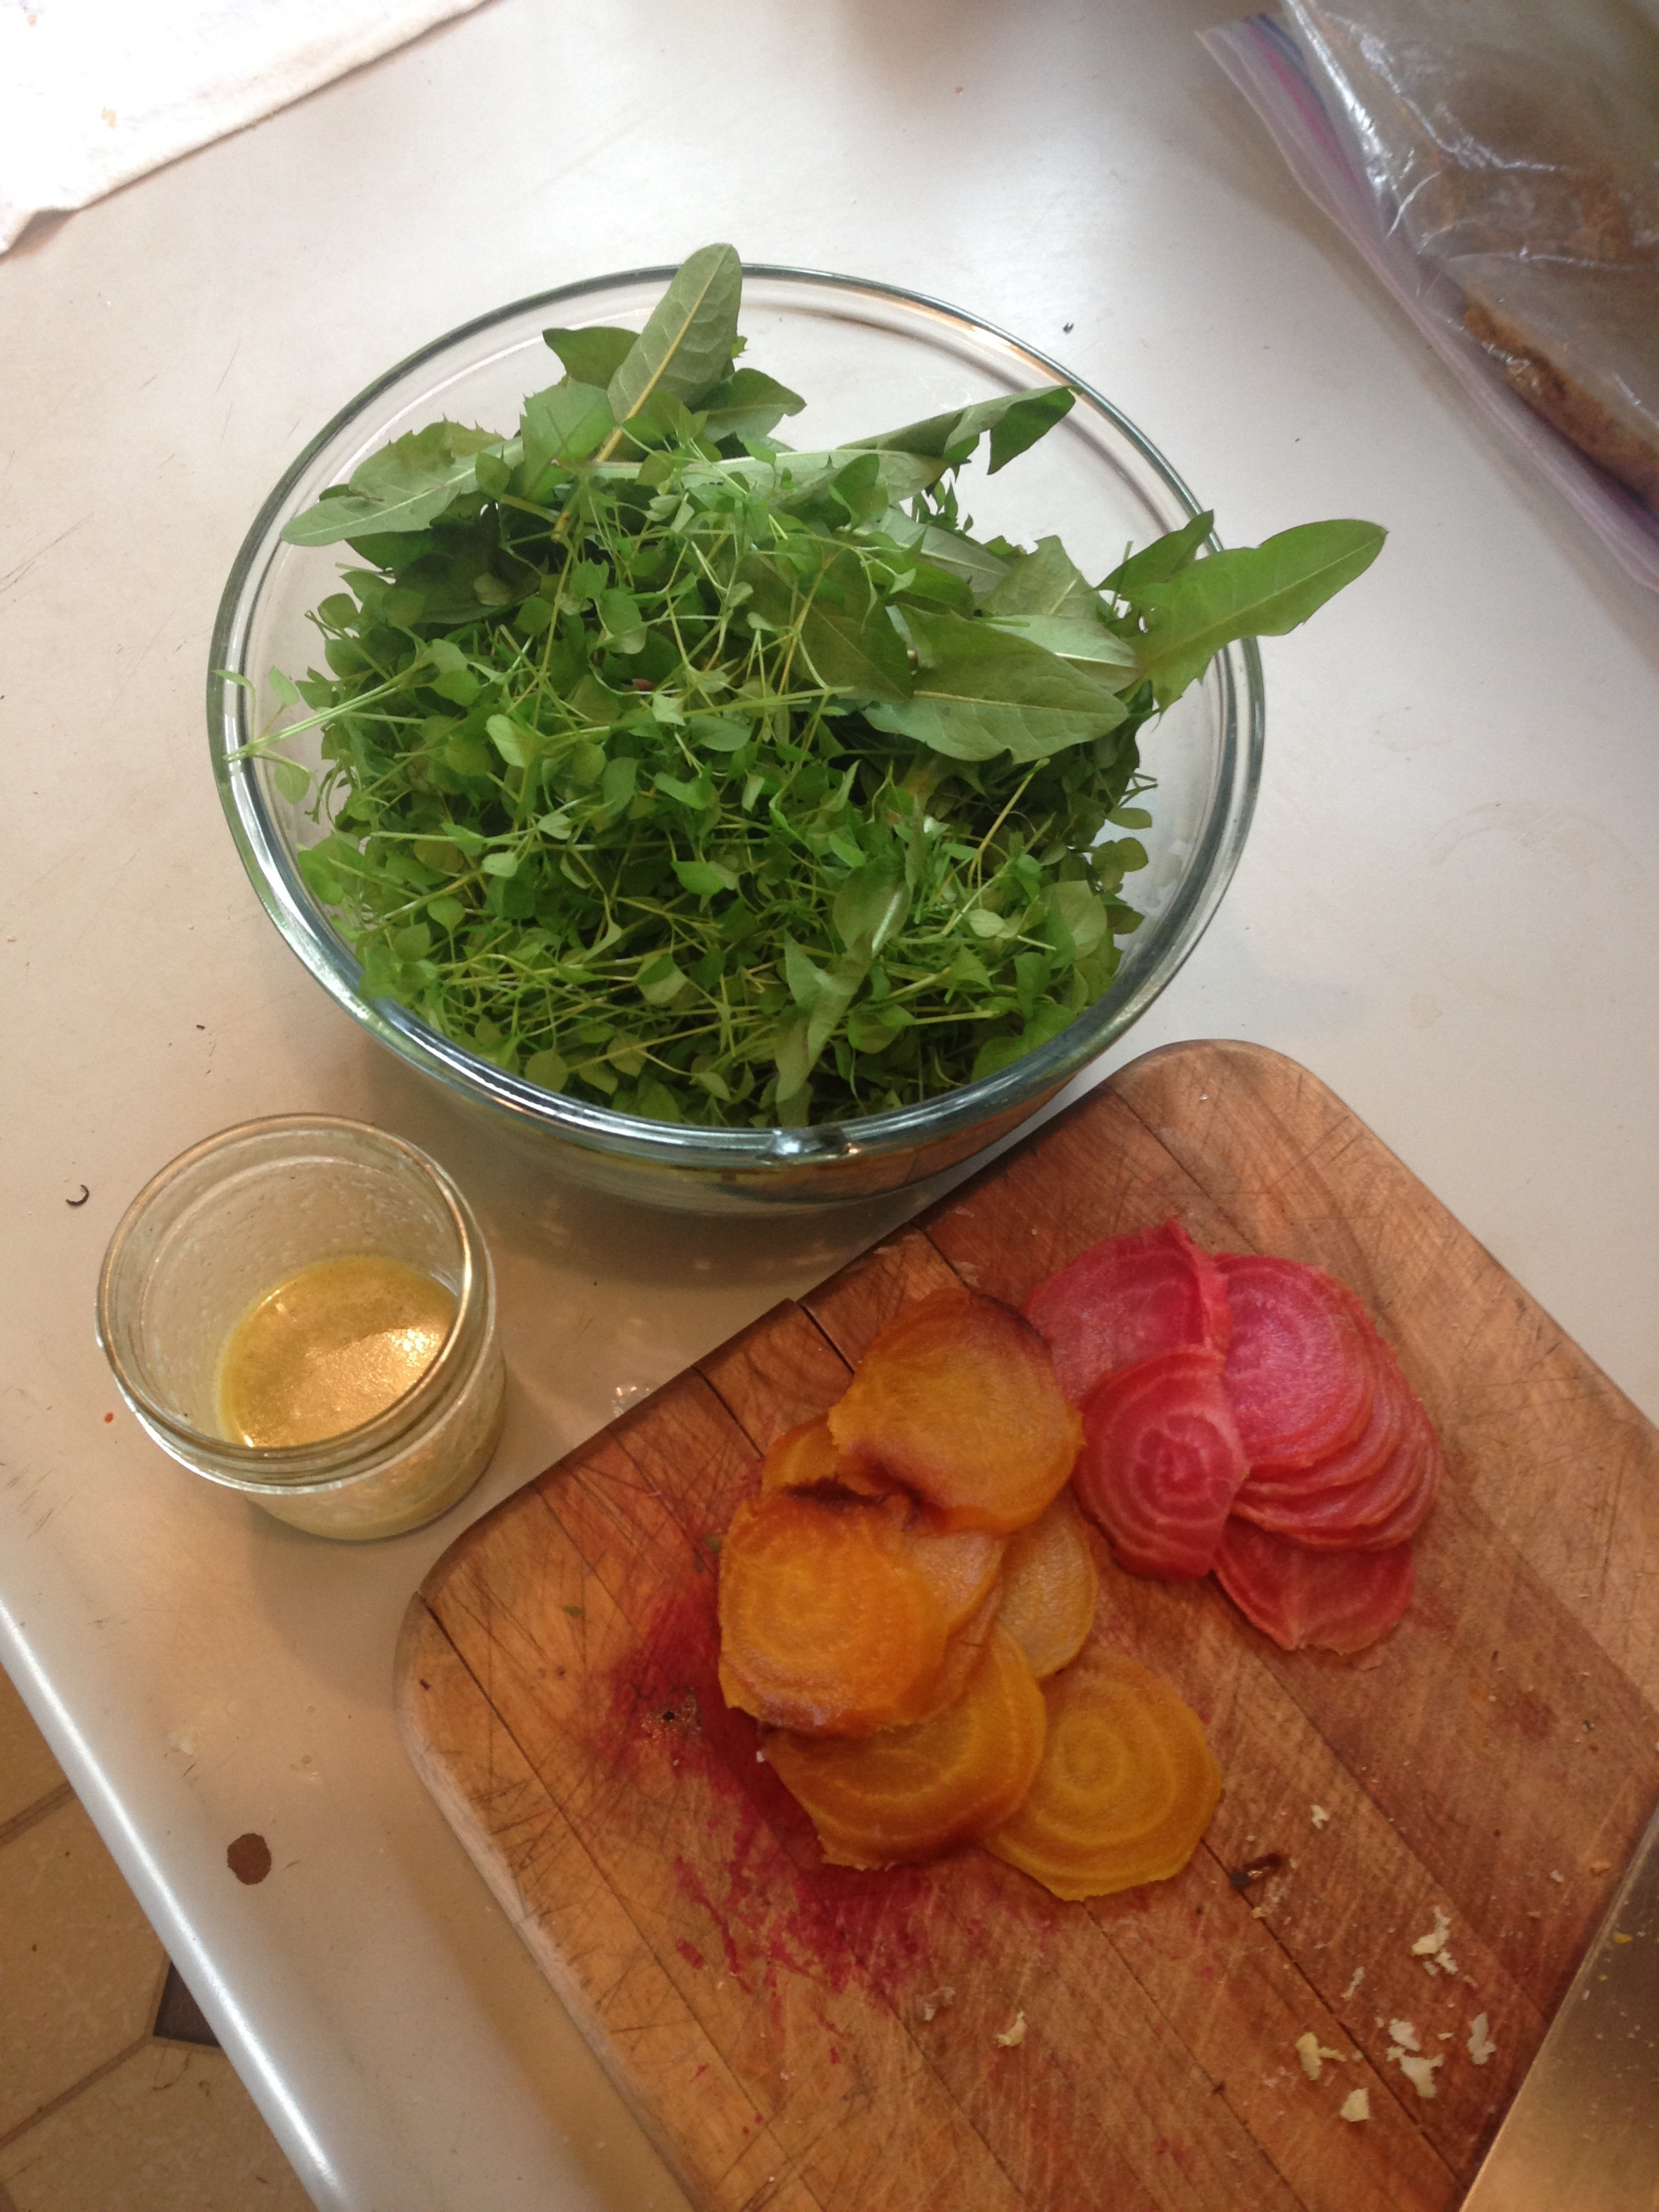 golden and chioggia beets, roasted then sliced, ready to go on a spring salad.  Above image from getty images.